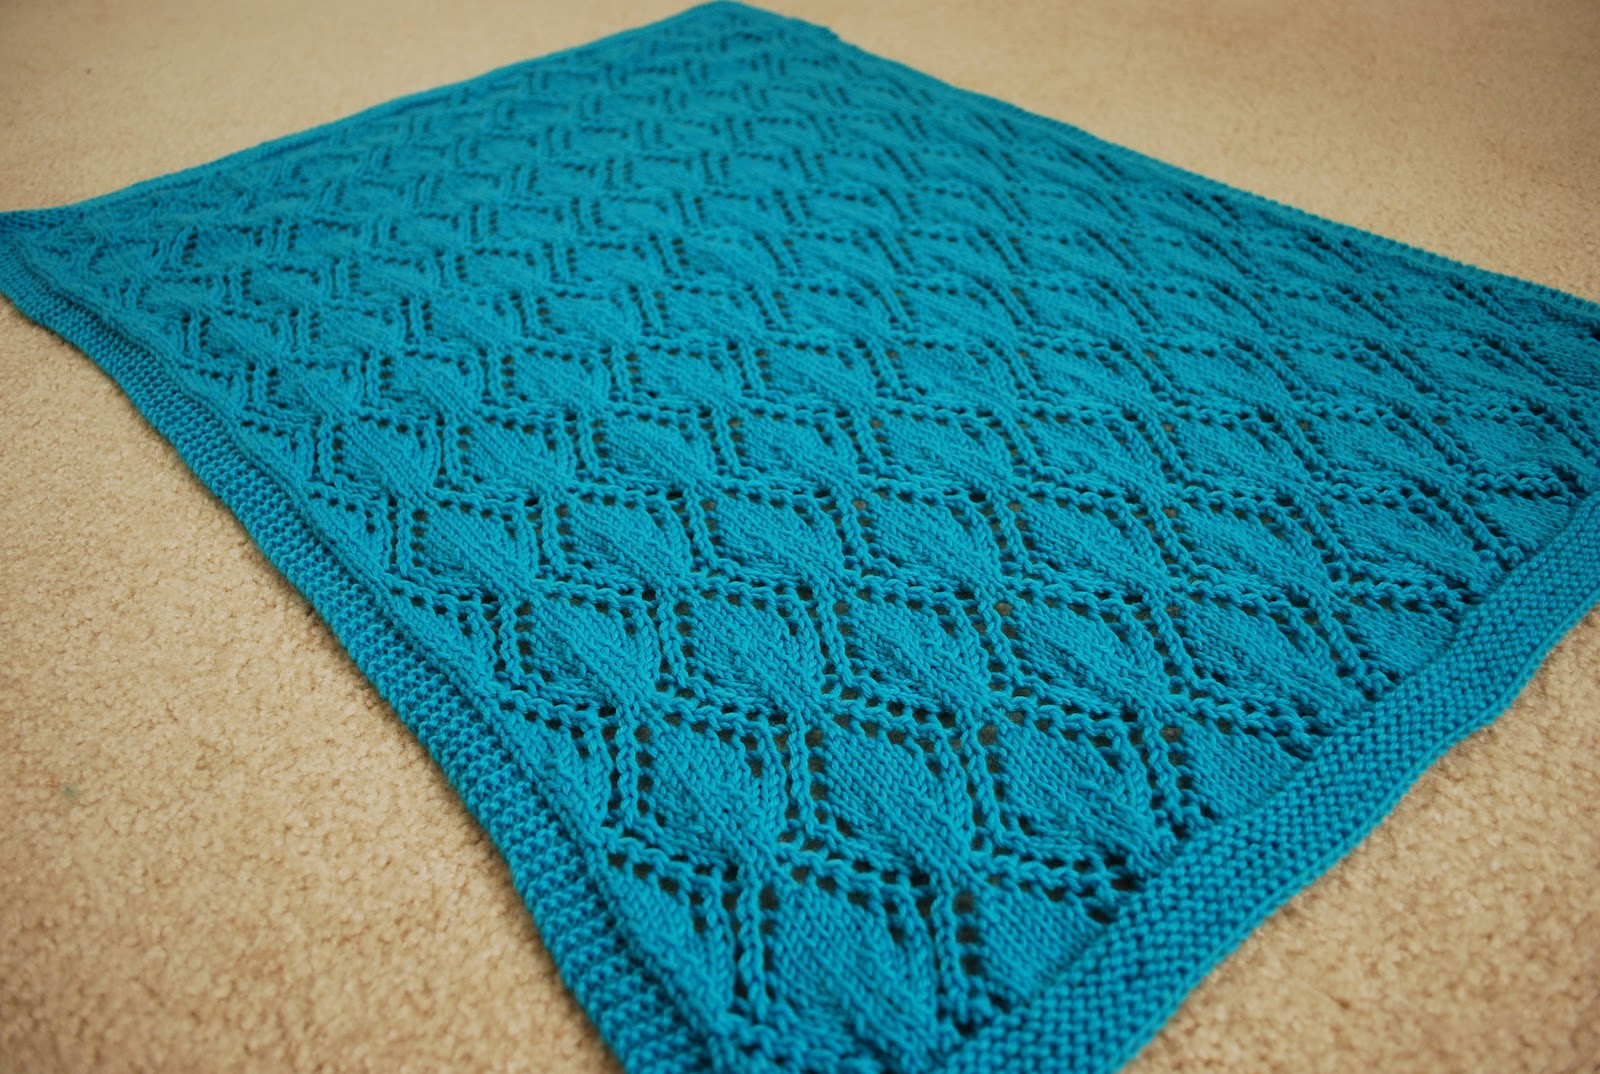 Blanket Patterns New Knit Wit Pattern Release Gothic Leaves Baby Blanket Of Fresh 49 Pics Blanket Patterns